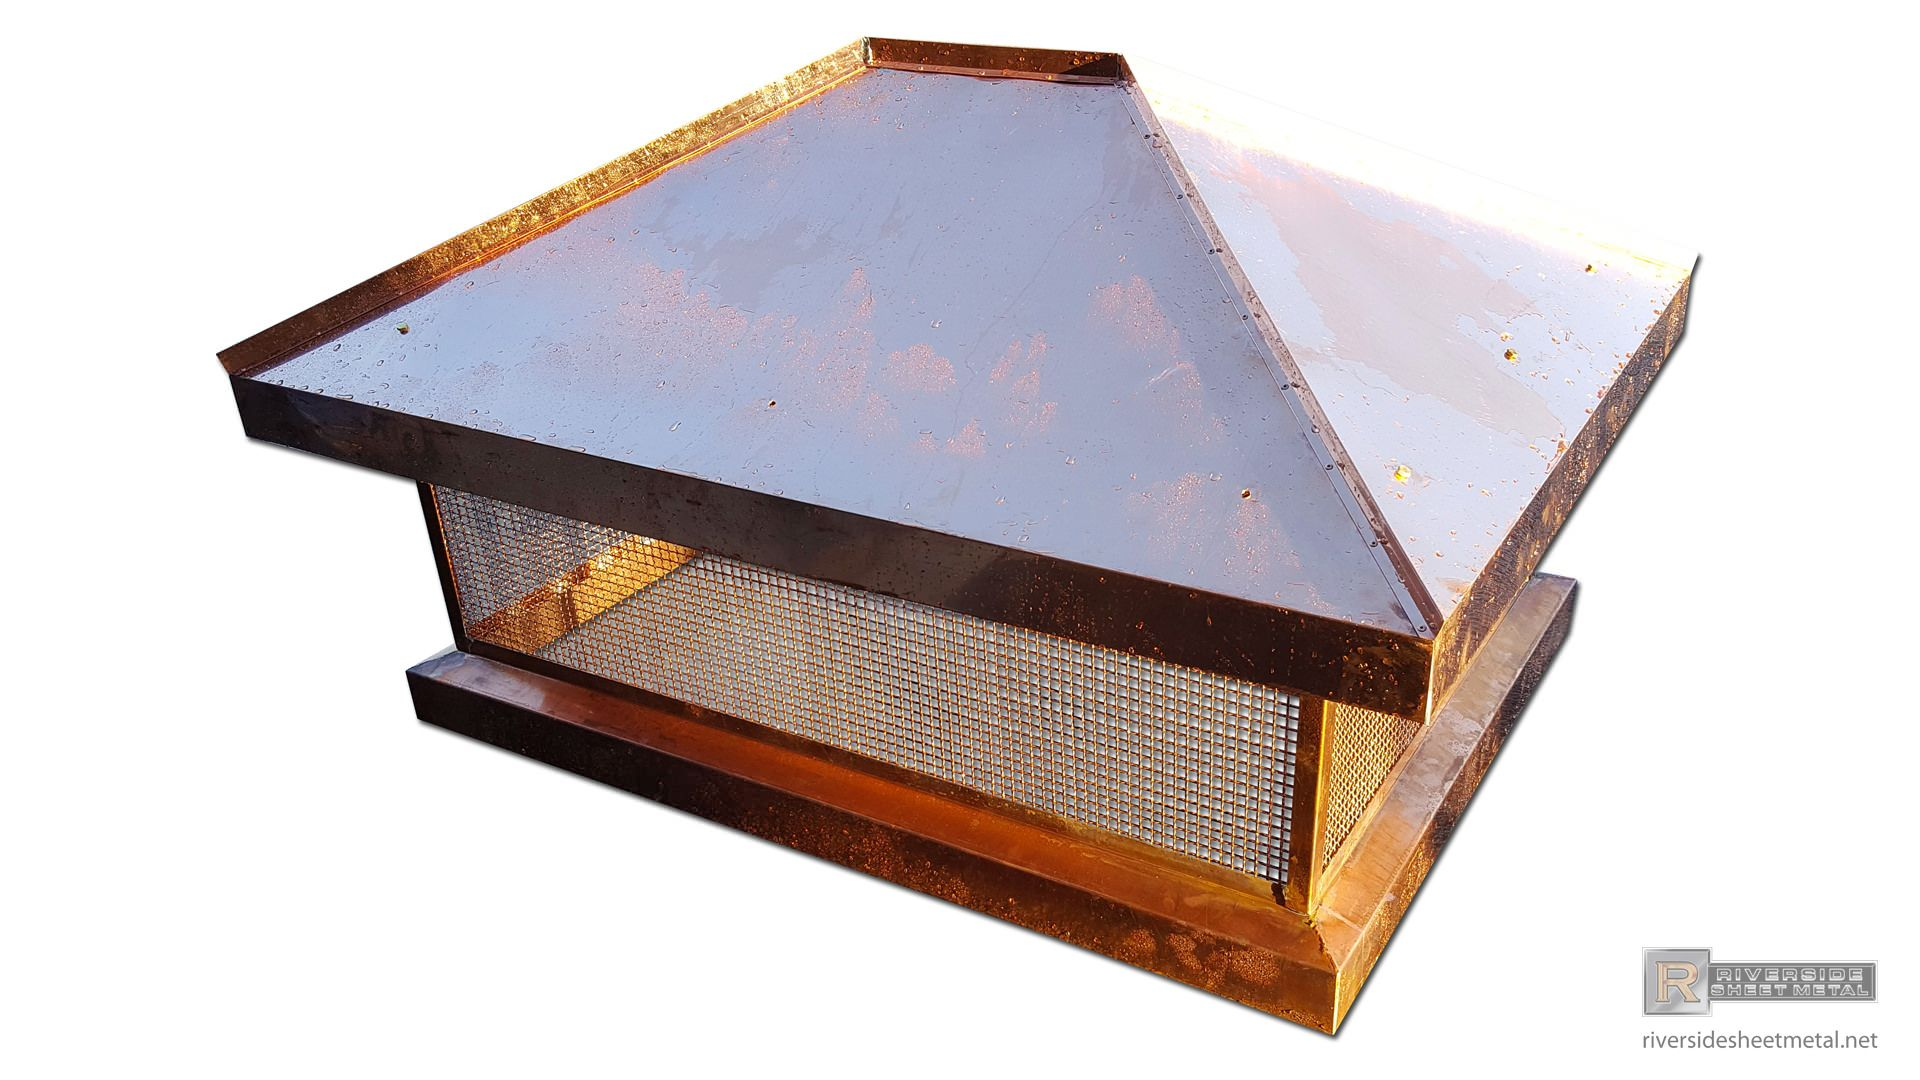 Chimney Top With Standing Seam Panels Ch025 Chimney Cap Wood Burning Fireplace Steel